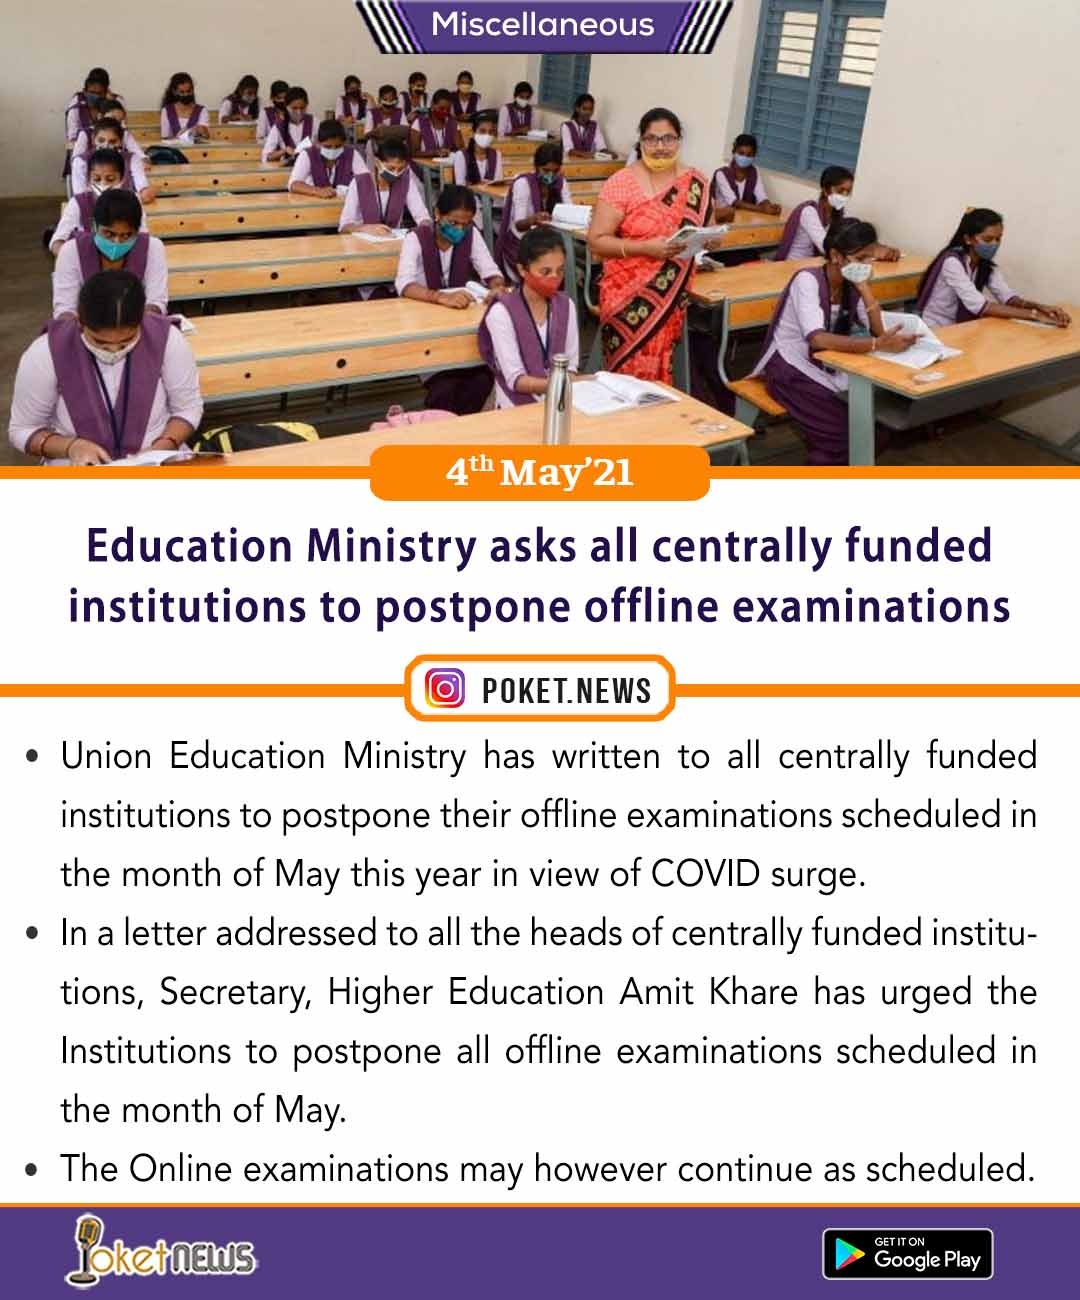 Education Ministry asks all centrally funded institutions to postpone offline examinations